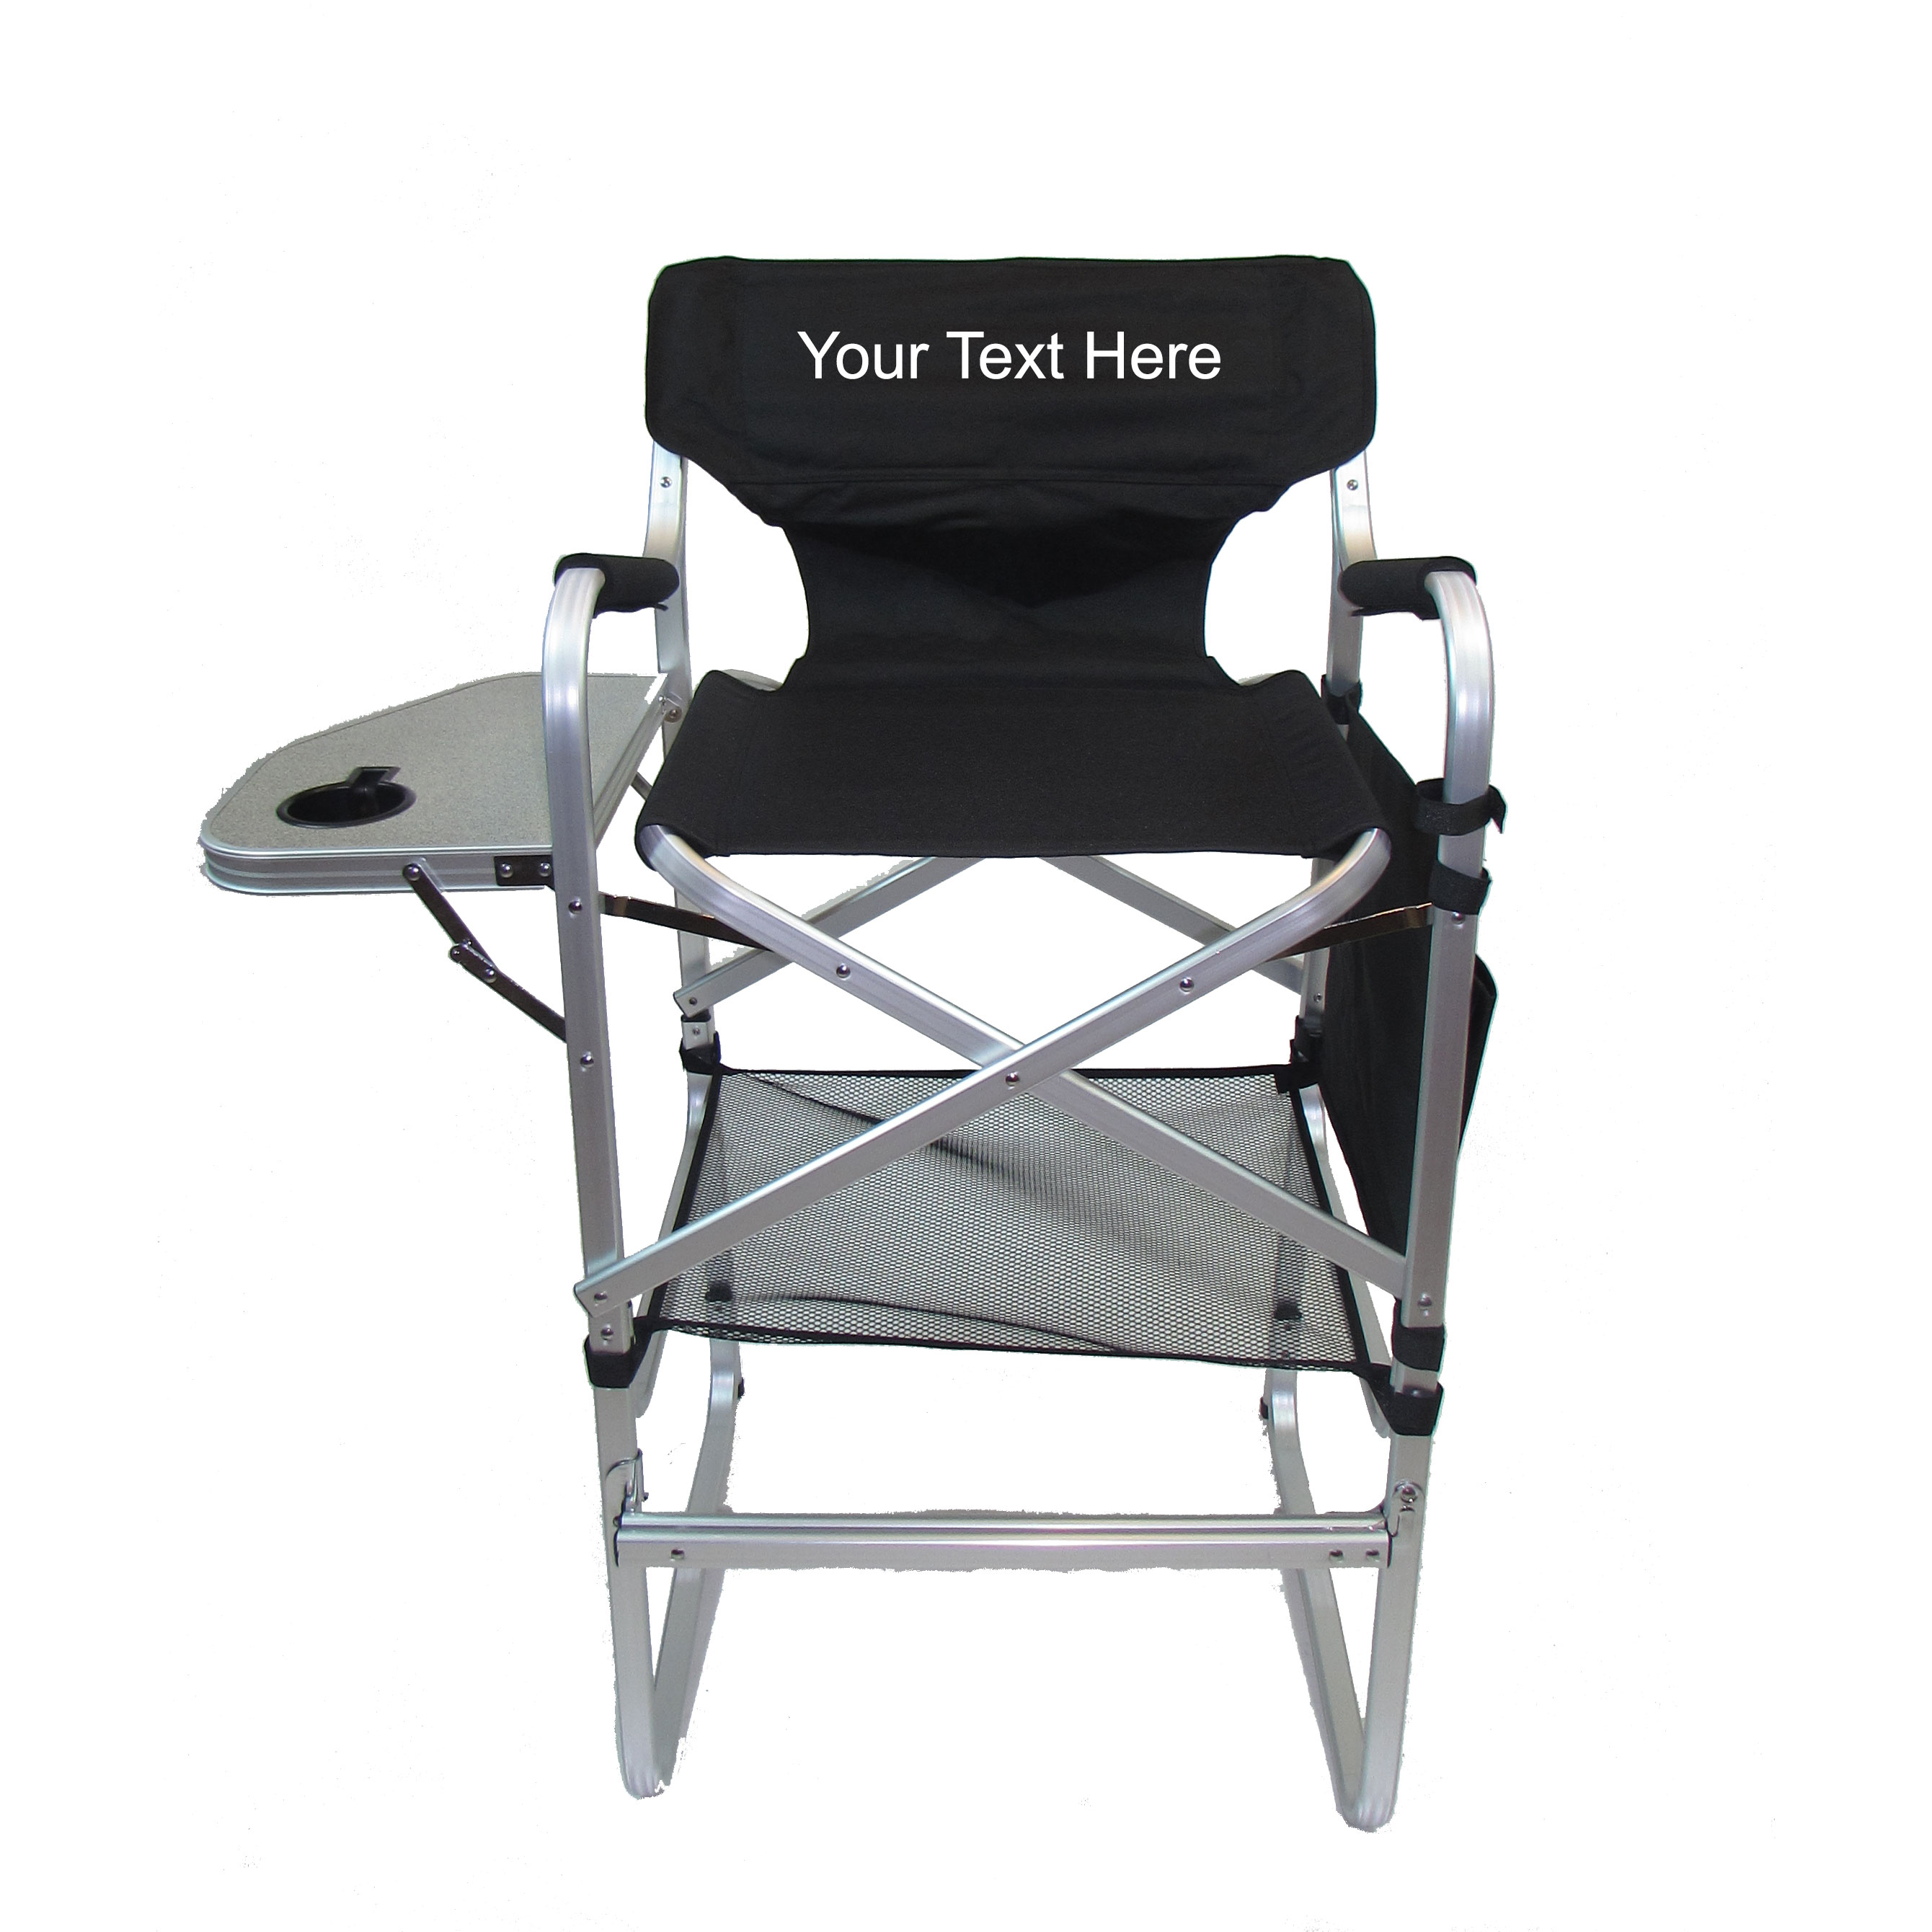 "IMPRINTED Personalized Aluminum 30"" Bar Height Directors Chair with Table & Side Bag"